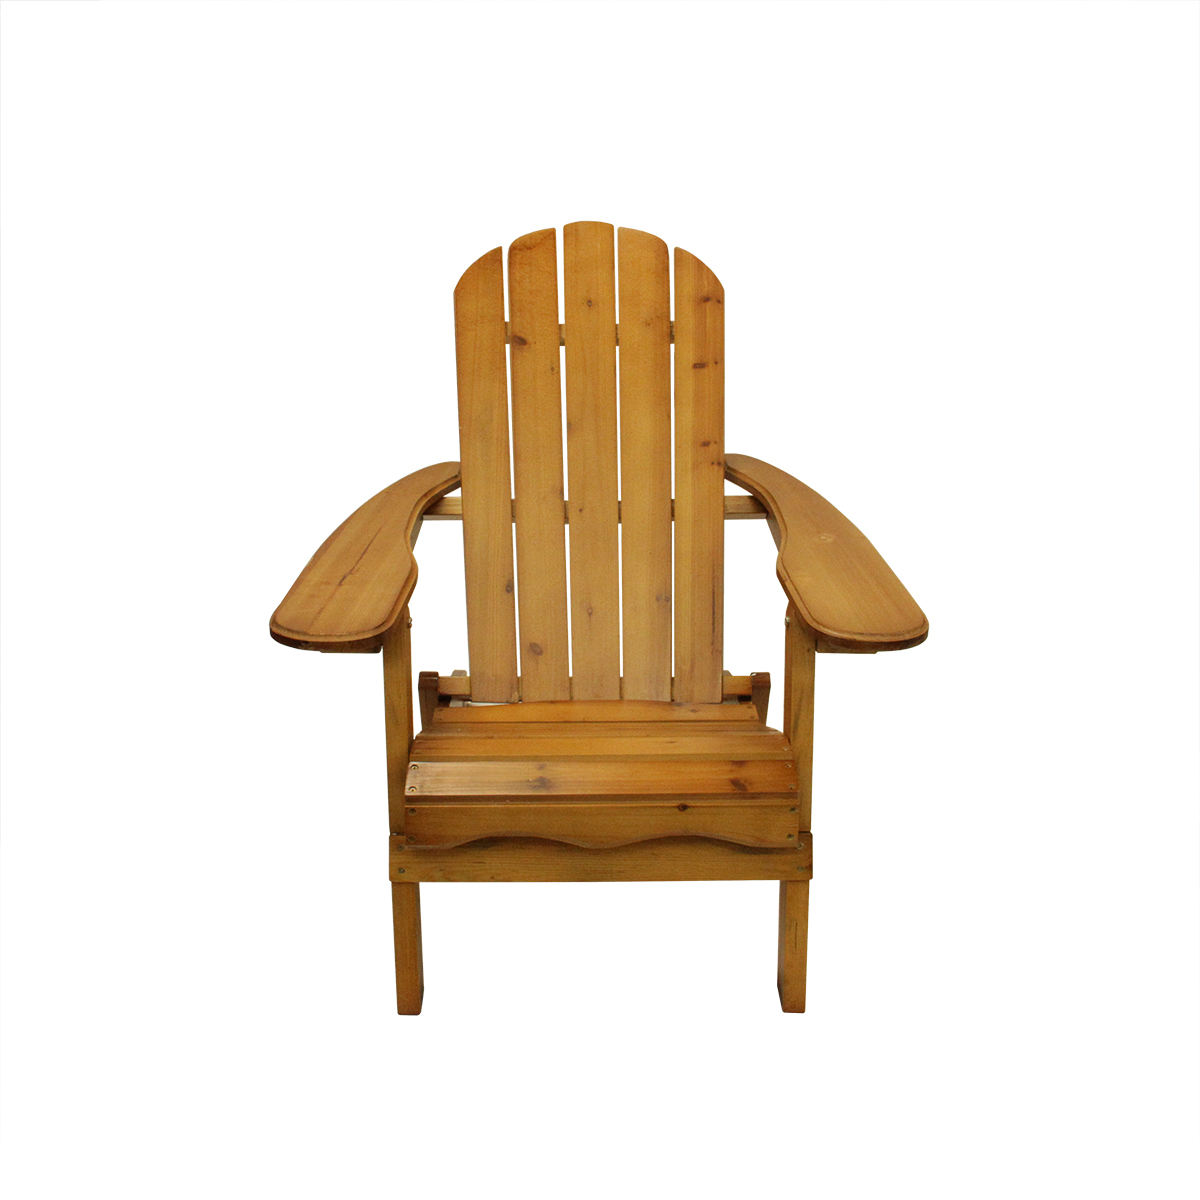 "40"" Brown Wooden Folding Outdoor Patio Adirondack Chair Walmart"